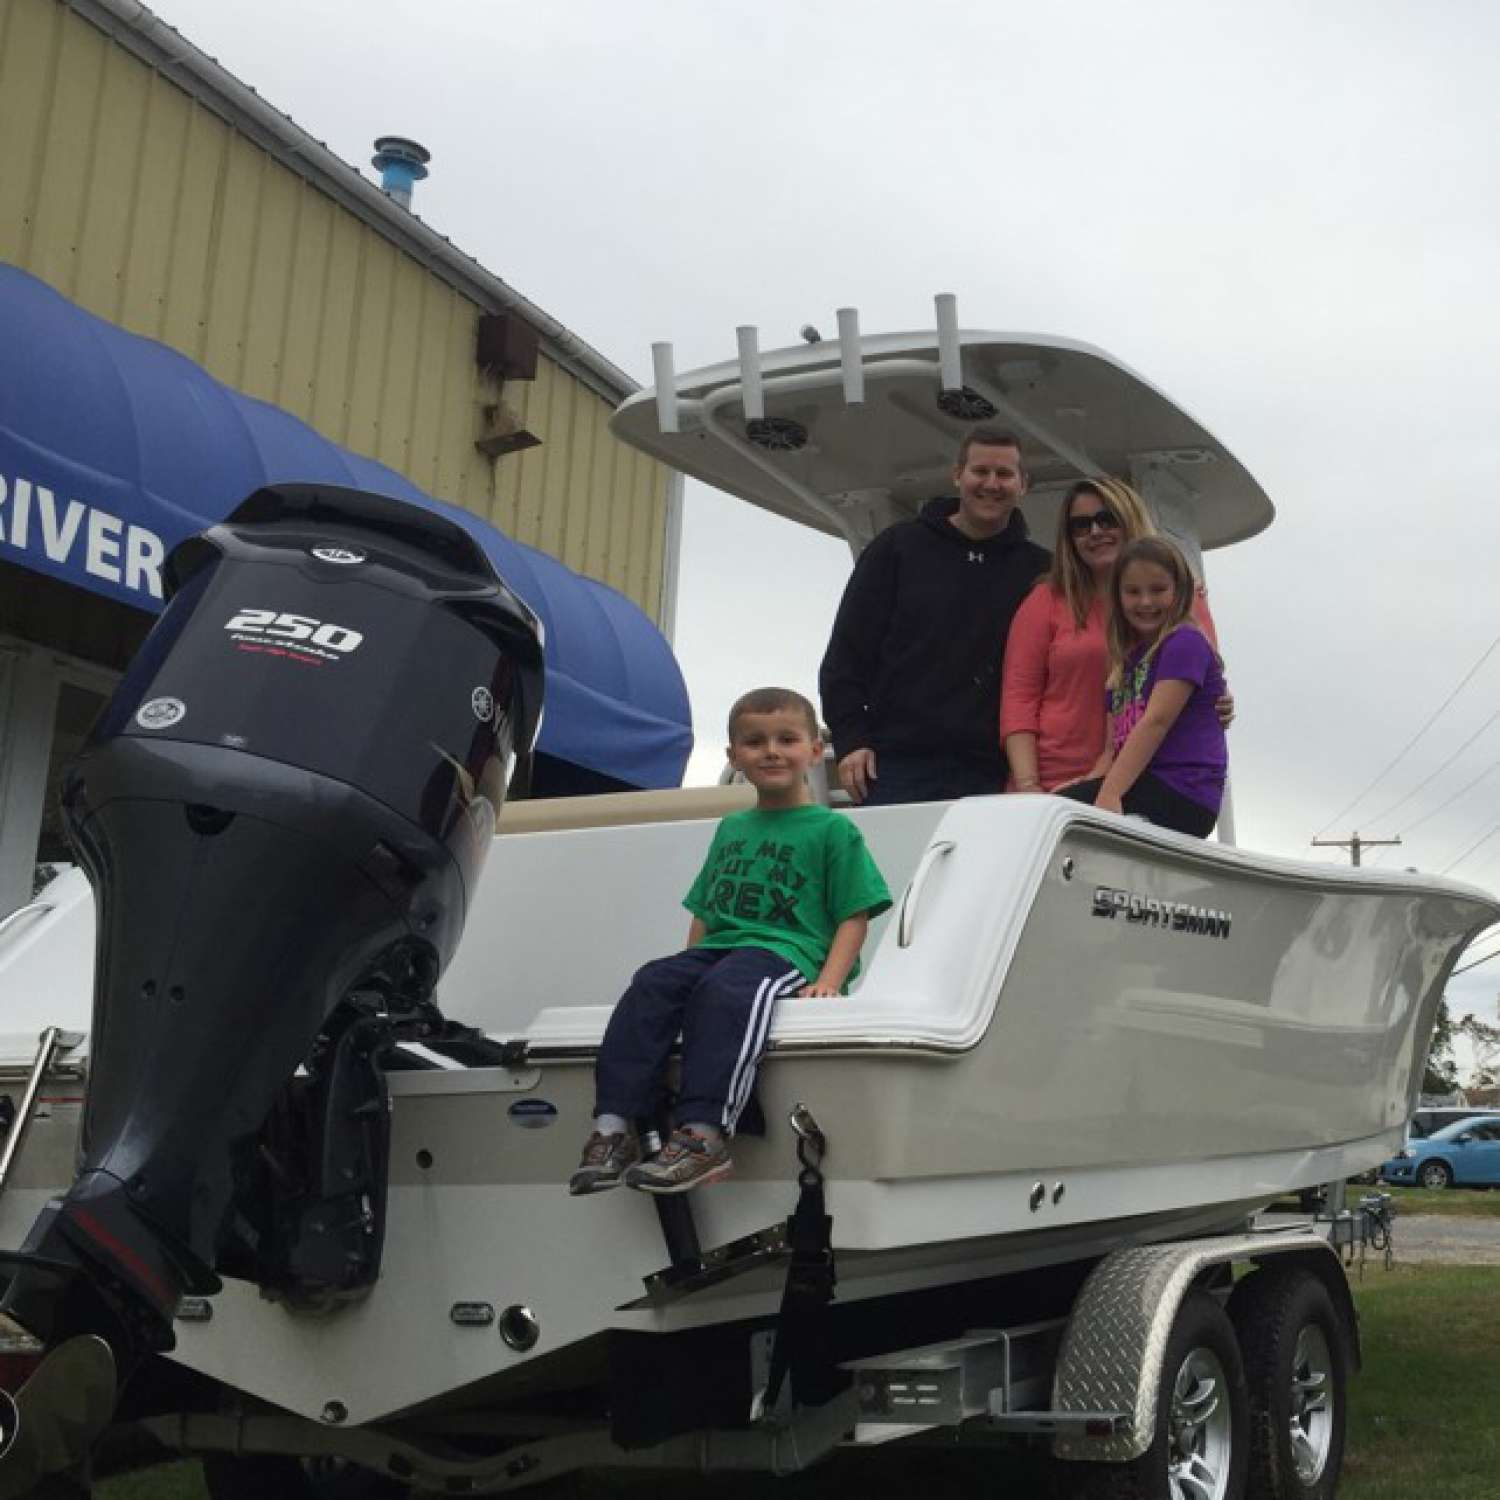 Title: Family Pic - On board their Sportsman Open 232 Center Console - Location: Baltimore, Maryland. Participating in the Photo Contest #SportsmanNovember2015